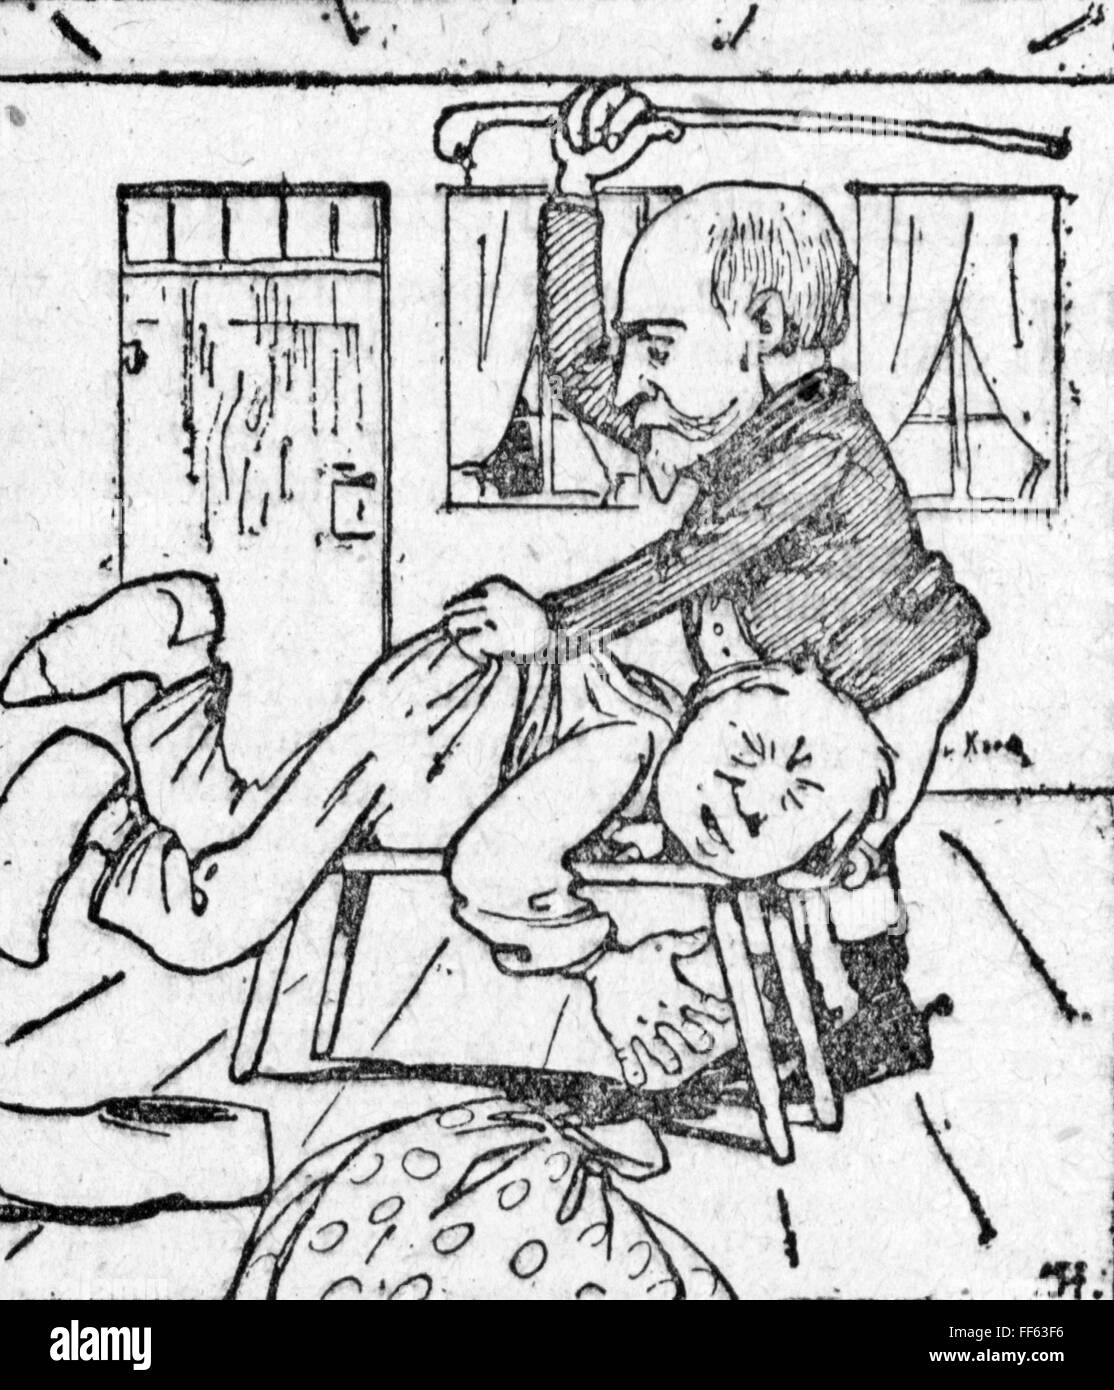 pedagogy, caricature, 'Images of Prussian culture', drawing, out of: 'Kladderadatsch', Berlin, 1899, - Stock Image